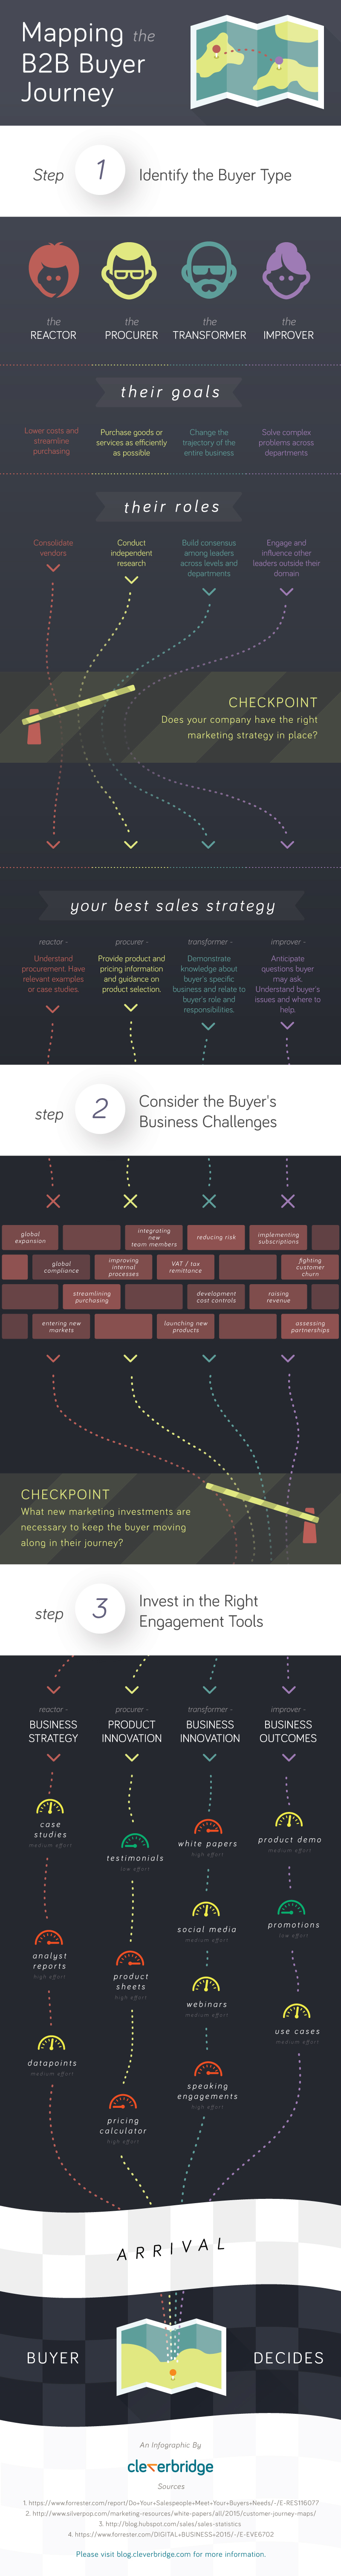 Mapping the B2B Buyer Journey